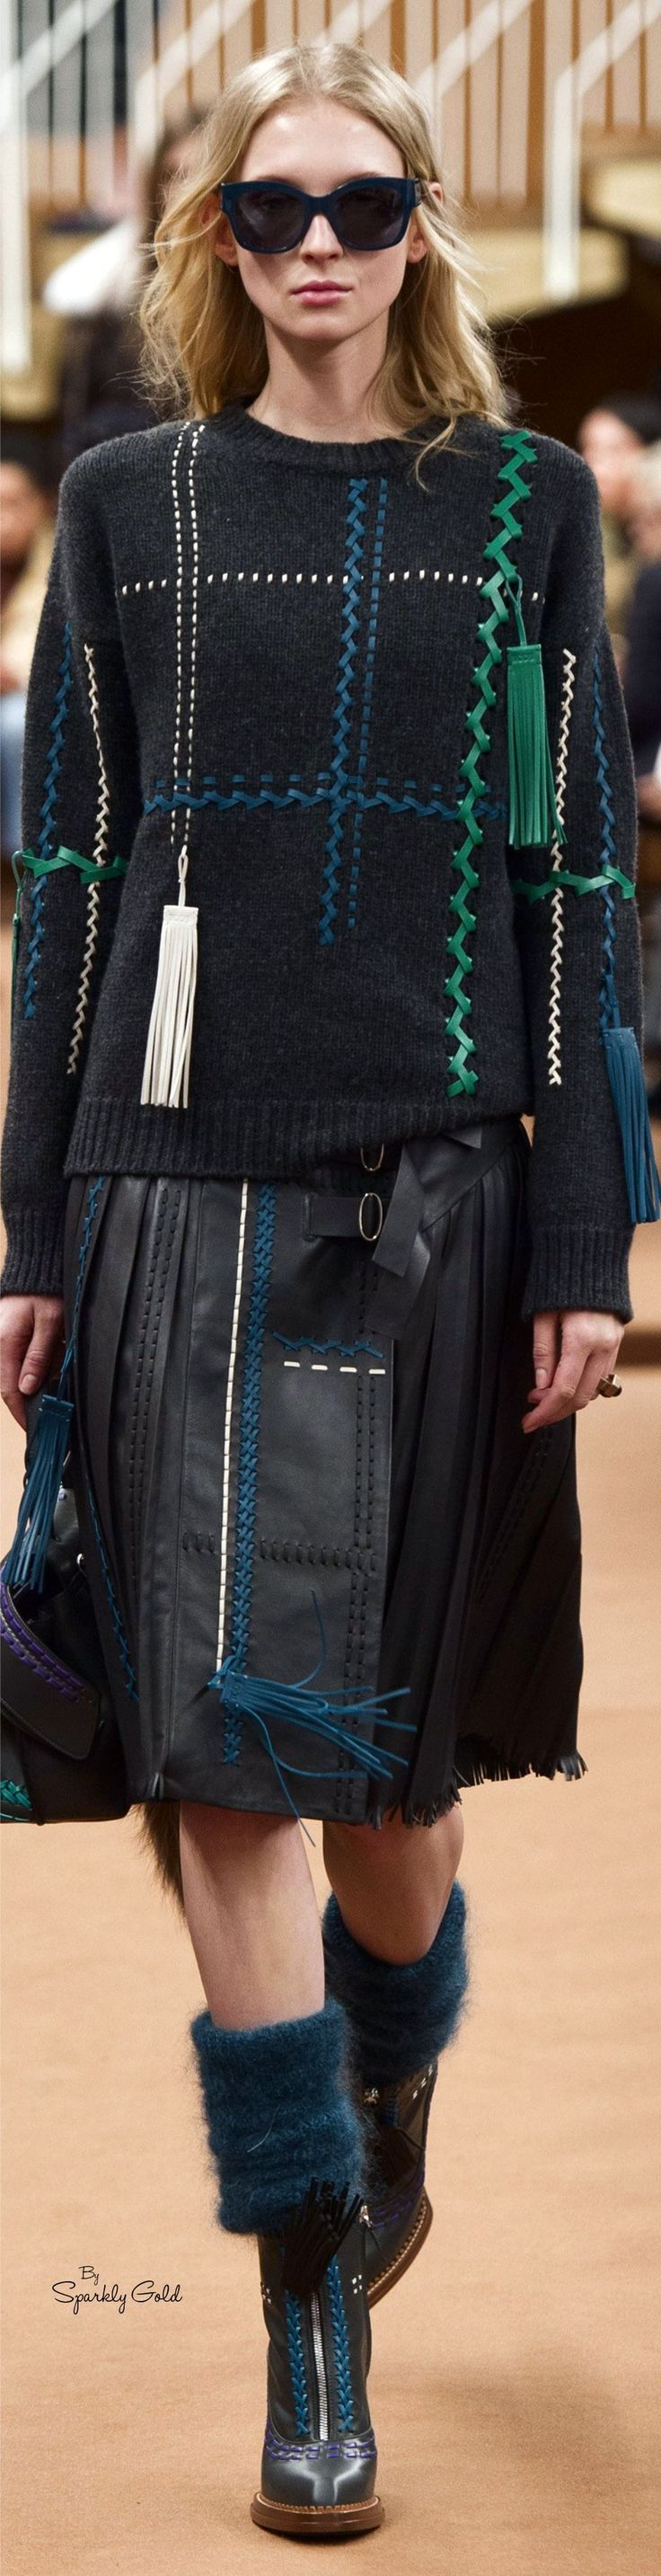 Tod's F-16 RTW: embellished sweater, matching leather skirt.